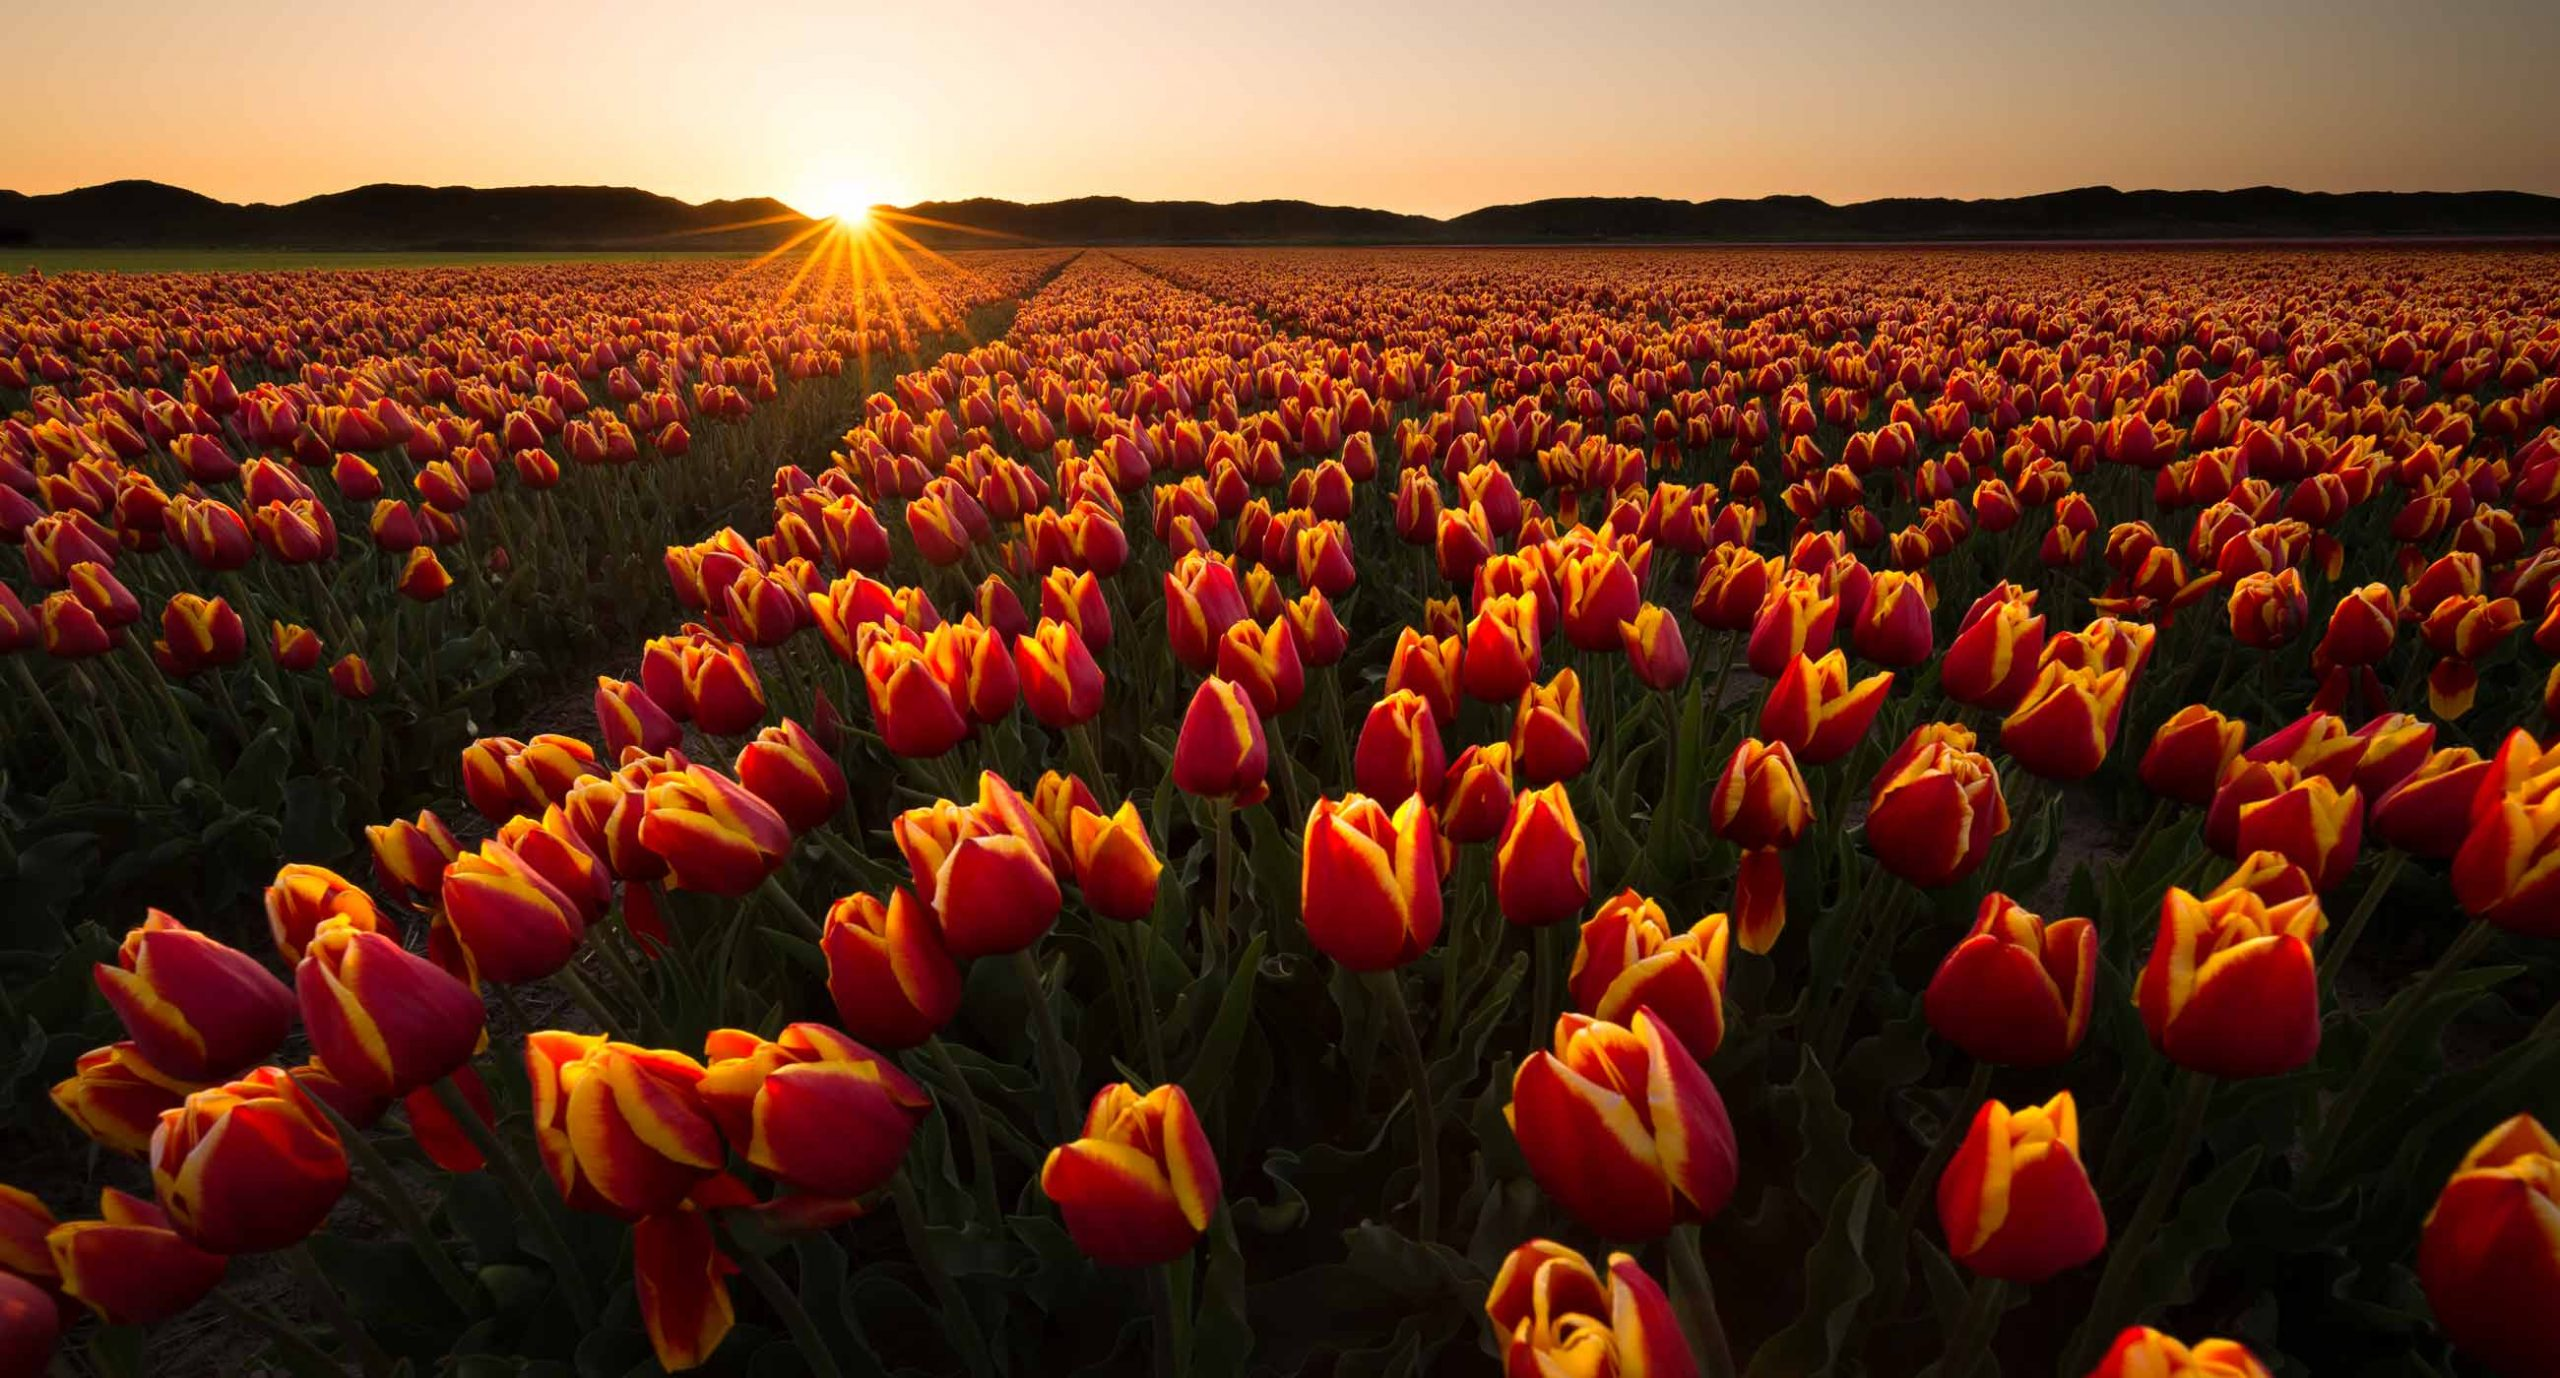 red yellow tulips at sunset in the netherlands in spring